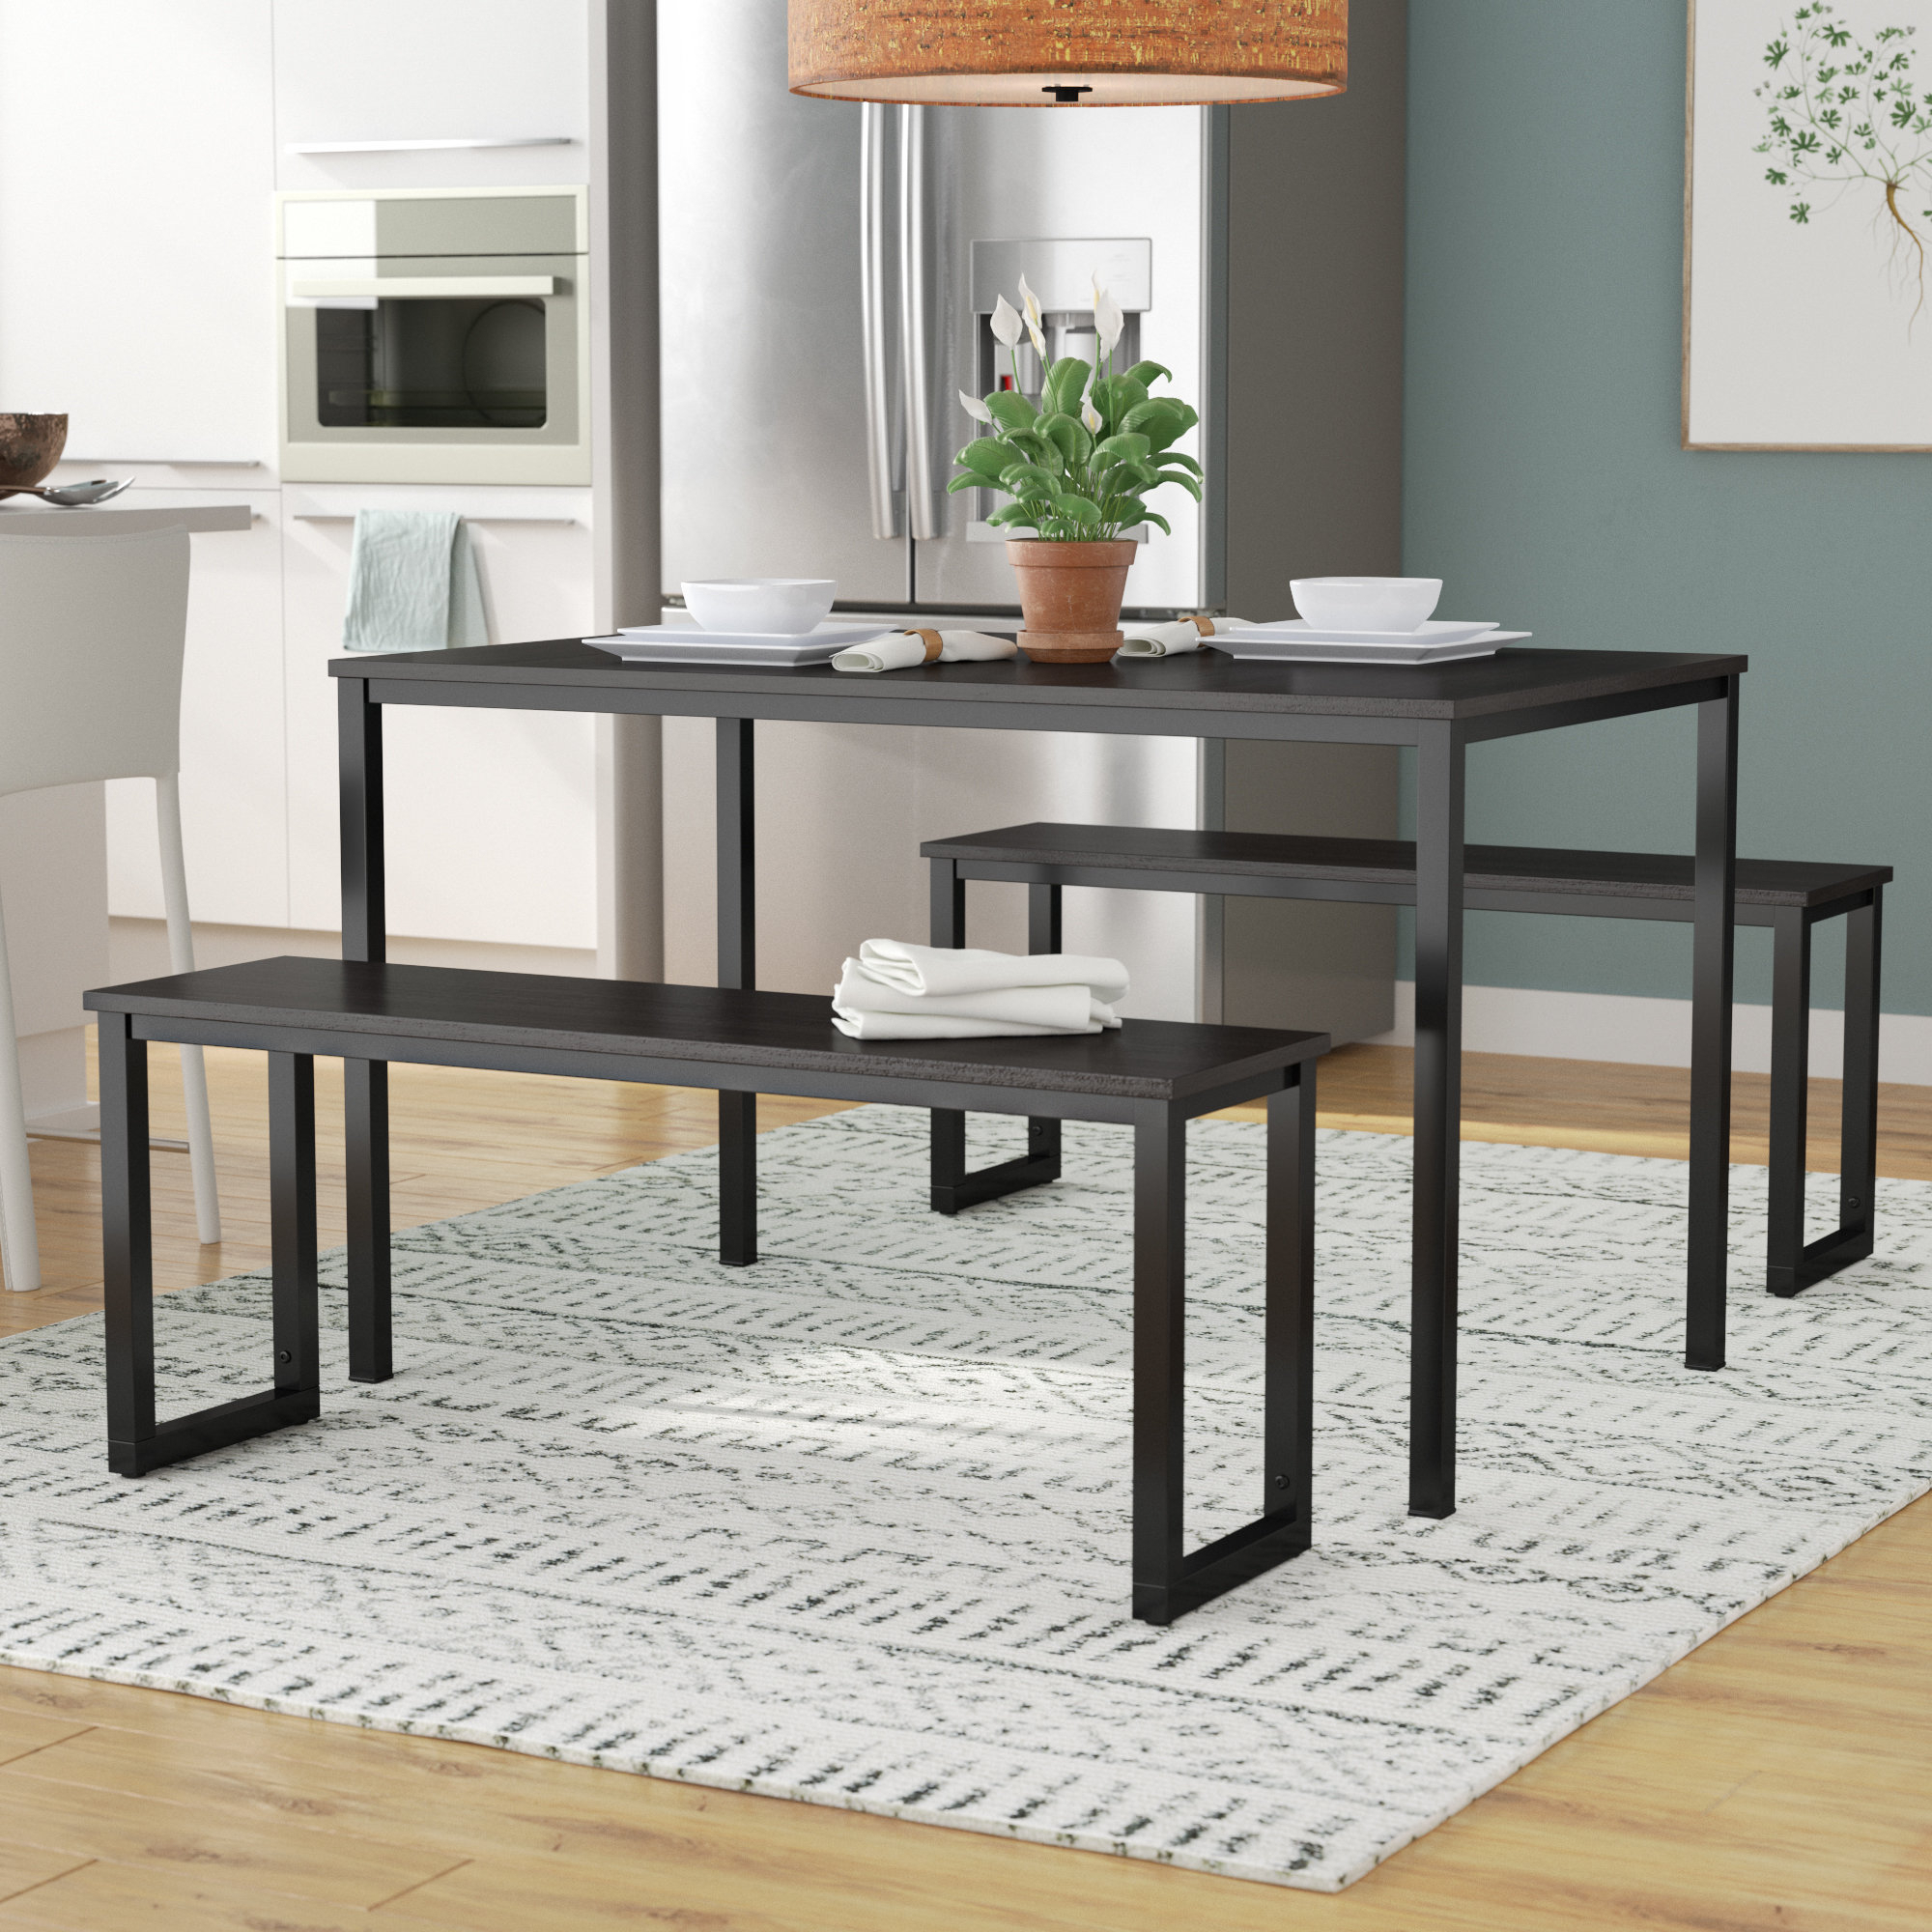 Wayfair Inside Most Recent Ryker 3 Piece Dining Sets (View 17 of 25)